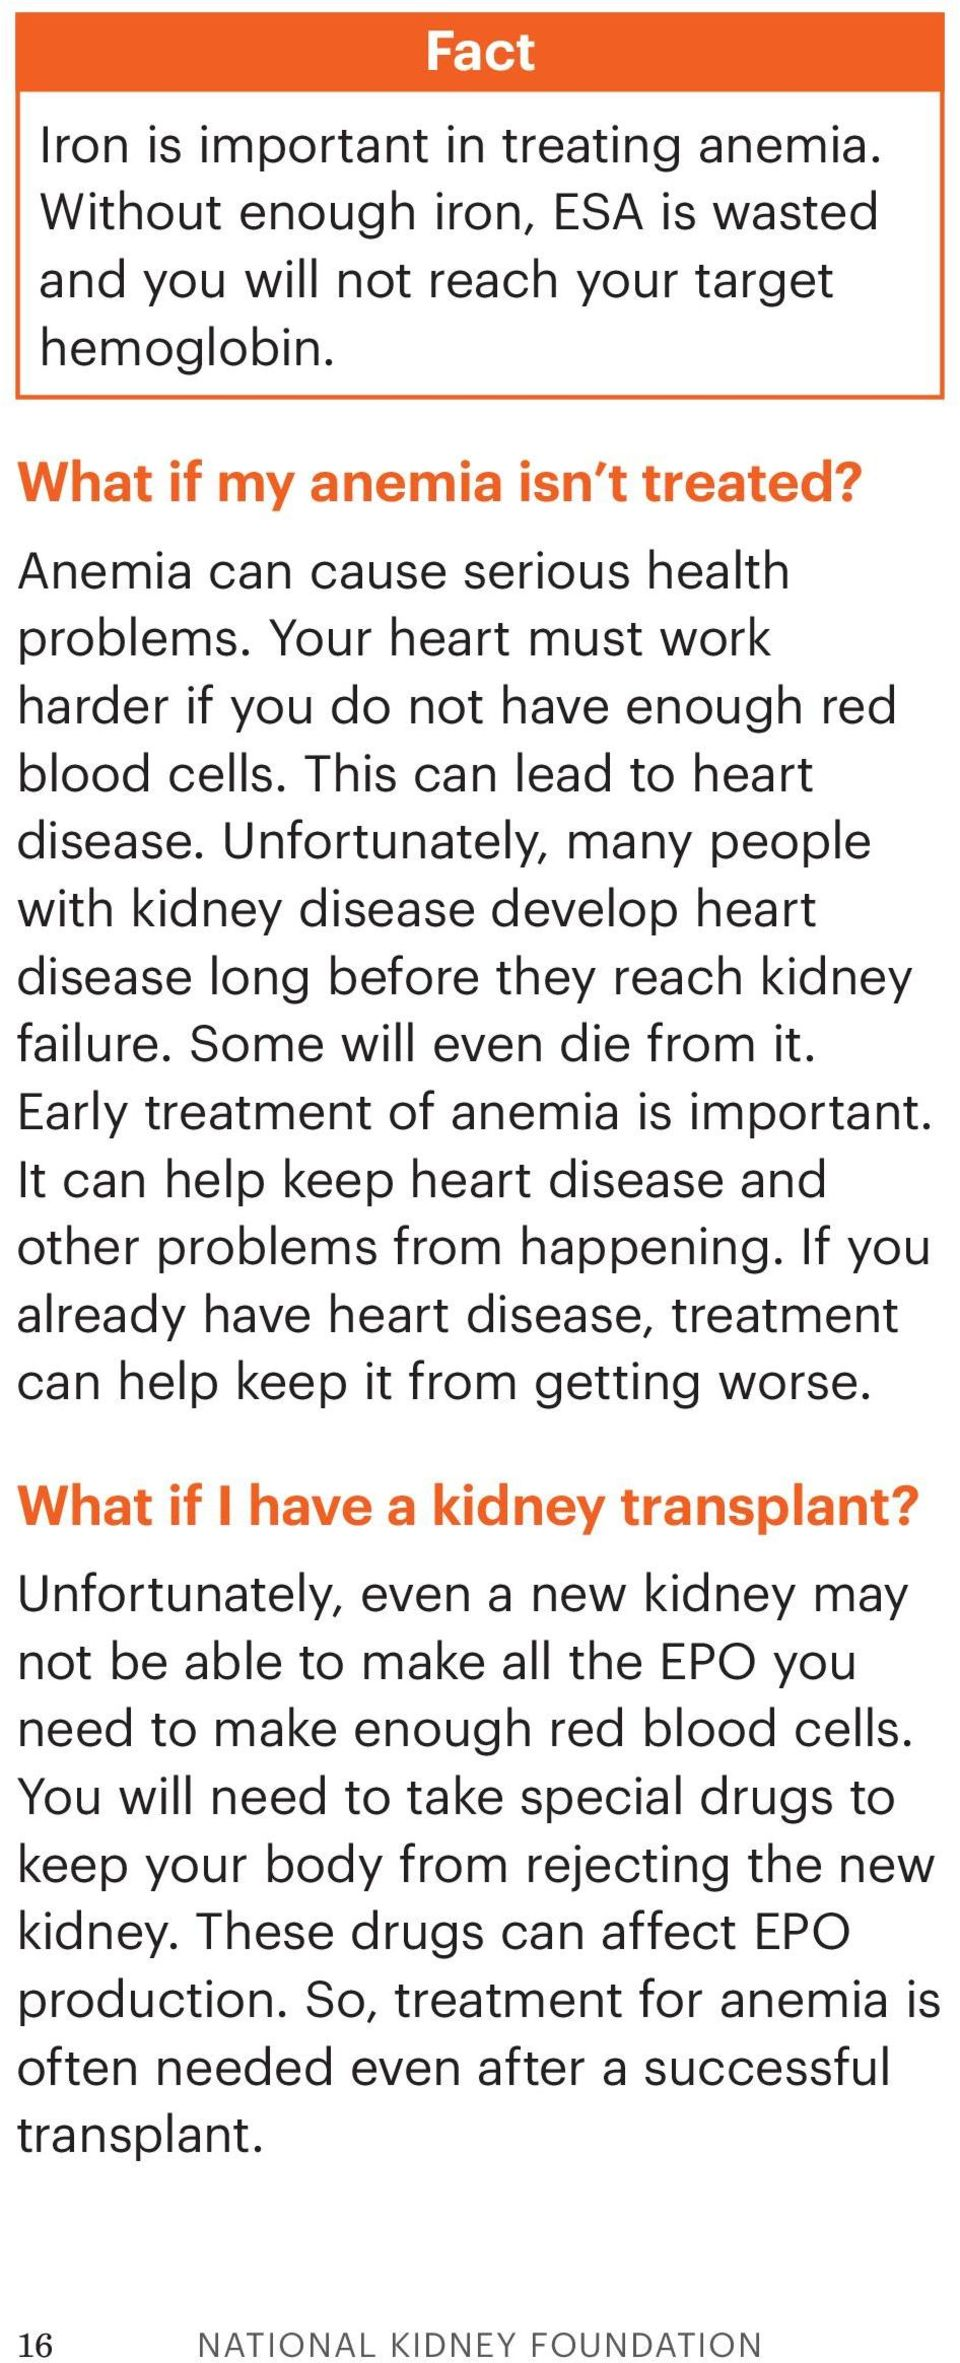 Unfortunately, many people with kidney disease develop heart disease long before they reach kidney failure. Some will even die from it. Early treatment of anemia is important.